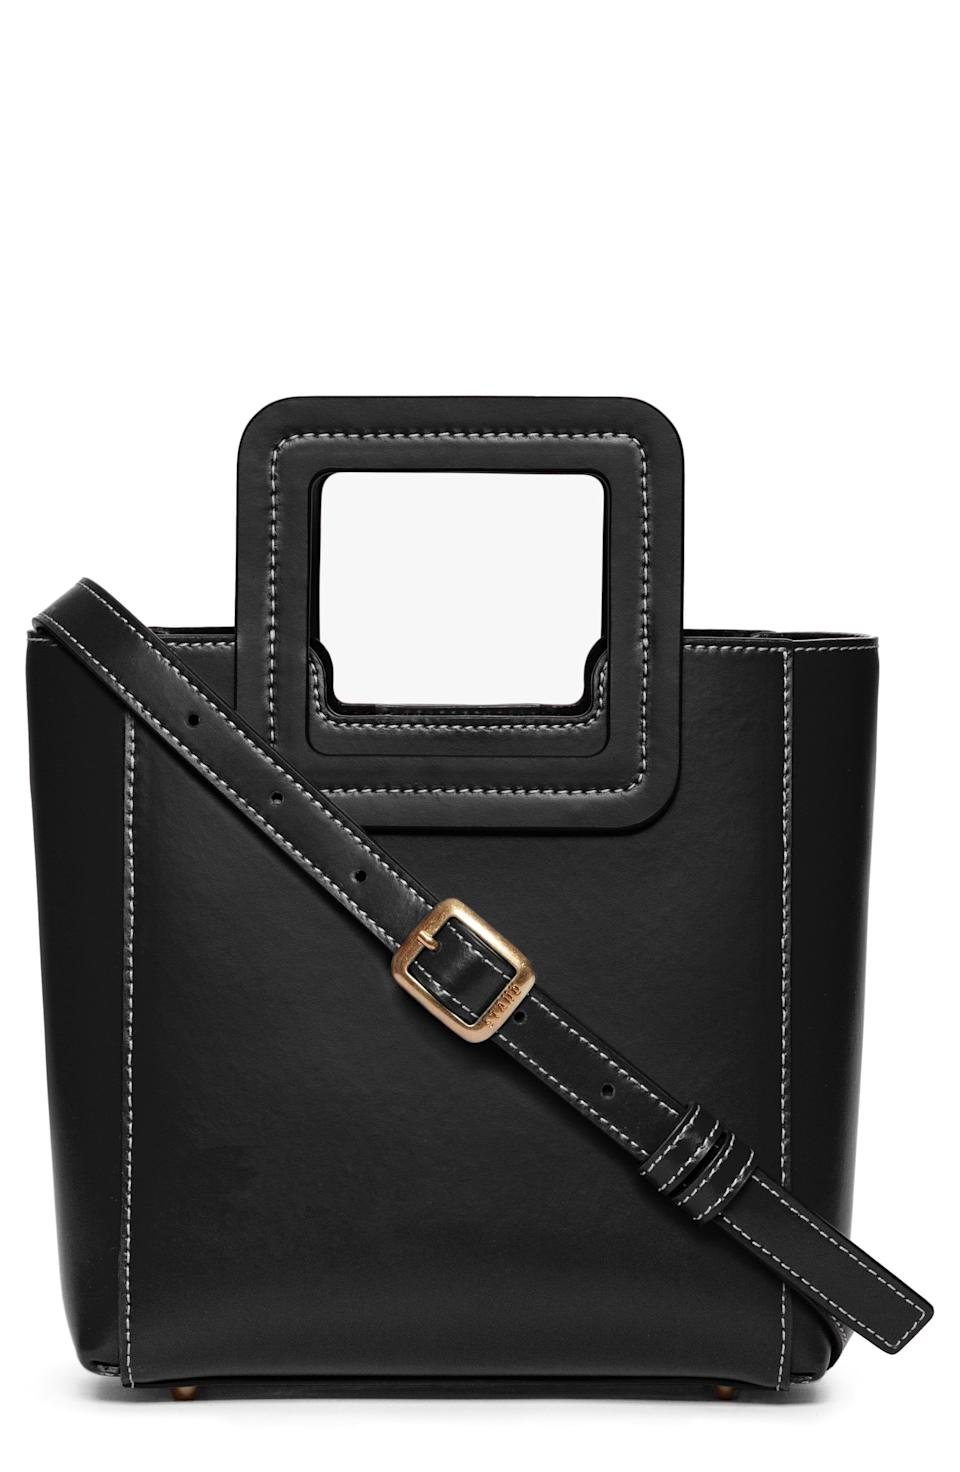 """<p><strong>STAUD</strong></p><p>nordstrom.com</p><p><a href=""""https://go.redirectingat.com?id=74968X1596630&url=https%3A%2F%2Fwww.nordstrom.com%2Fs%2Fstaud-mini-shirley-leather-satchel%2F6111821&sref=https%3A%2F%2Fwww.townandcountrymag.com%2Fstyle%2Ffashion-trends%2Fg36557314%2Fnordstrom-half-yearly-sale-may-2021%2F"""" rel=""""nofollow noopener"""" target=""""_blank"""" data-ylk=""""slk:Shop Now"""" class=""""link rapid-noclick-resp"""">Shop Now</a></p><p>$150</p><p><em>Original Price: $250</em></p>"""